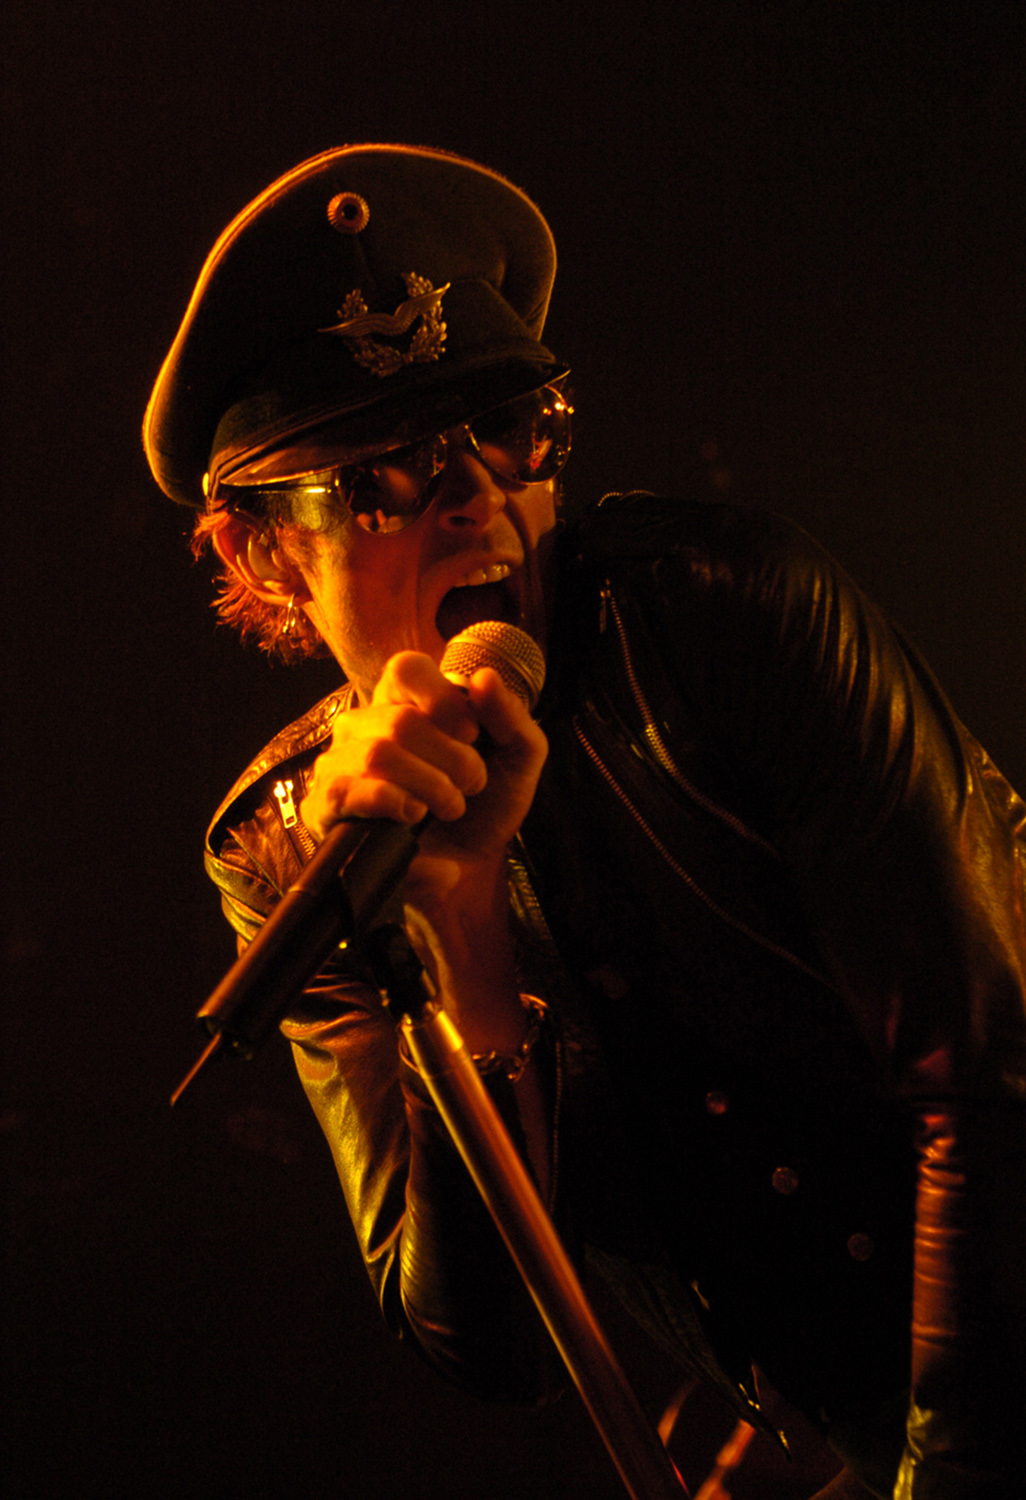 Scott Weiland, lead singer of the supergroup, Velvet Revolver, performs at the Starland Ballroom. (Reena Rose Sibayan | The Home-News Tribune)